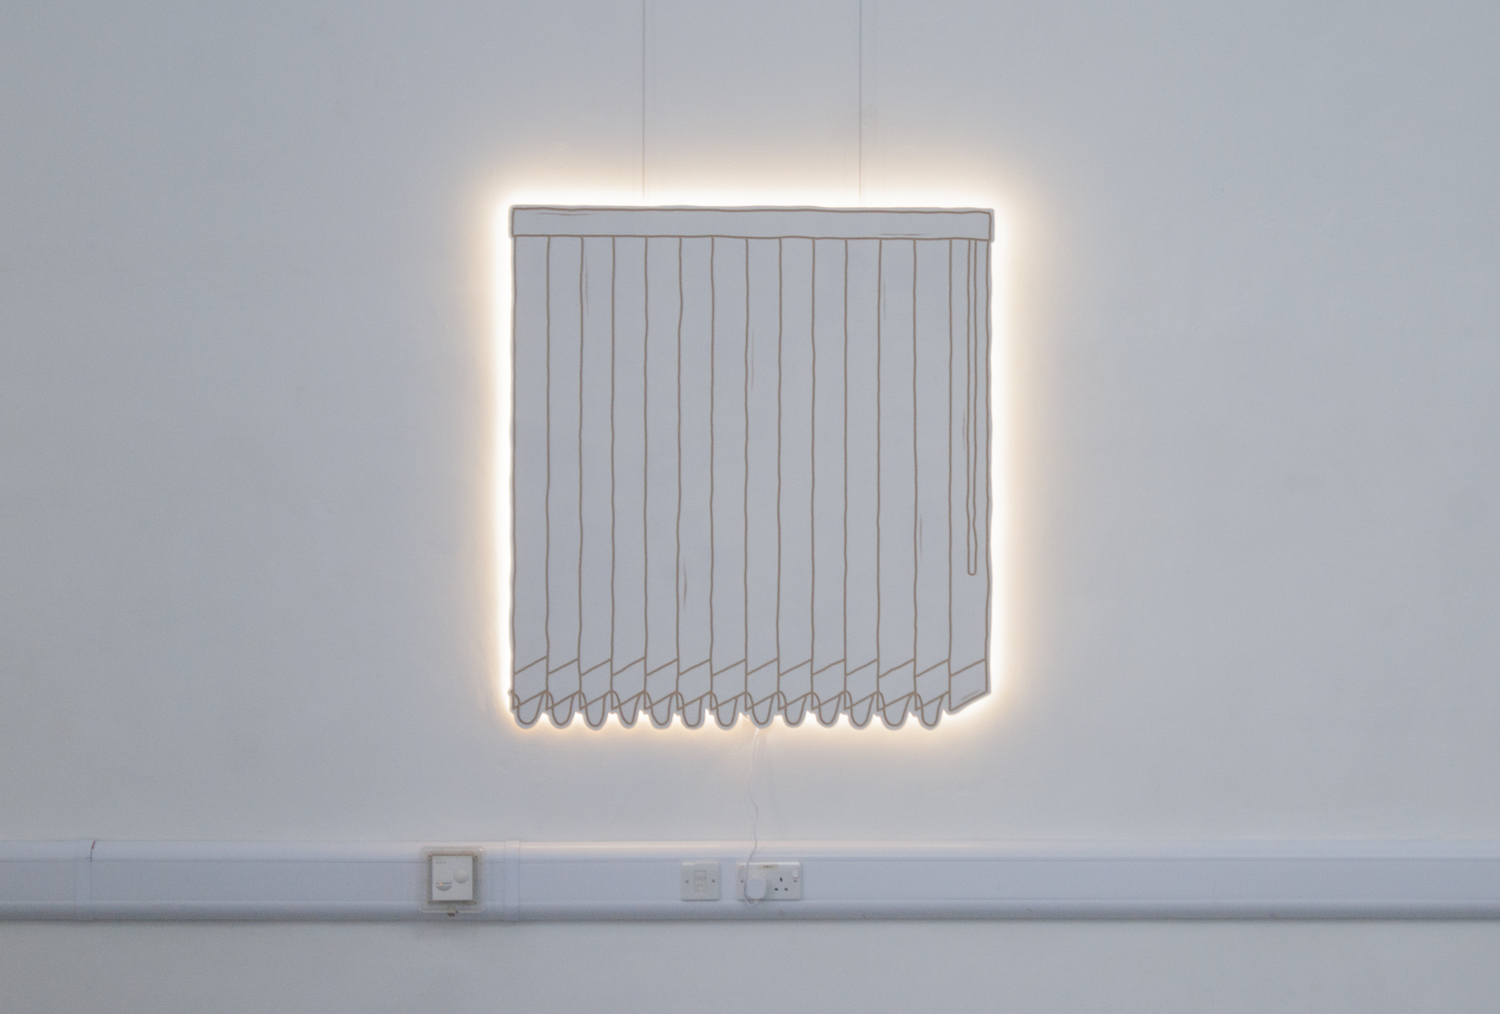 Milly Peck, Office Blinds At Dawn, 2019. Emulsion on board, LED lights. 111 x 120 x 3cm.